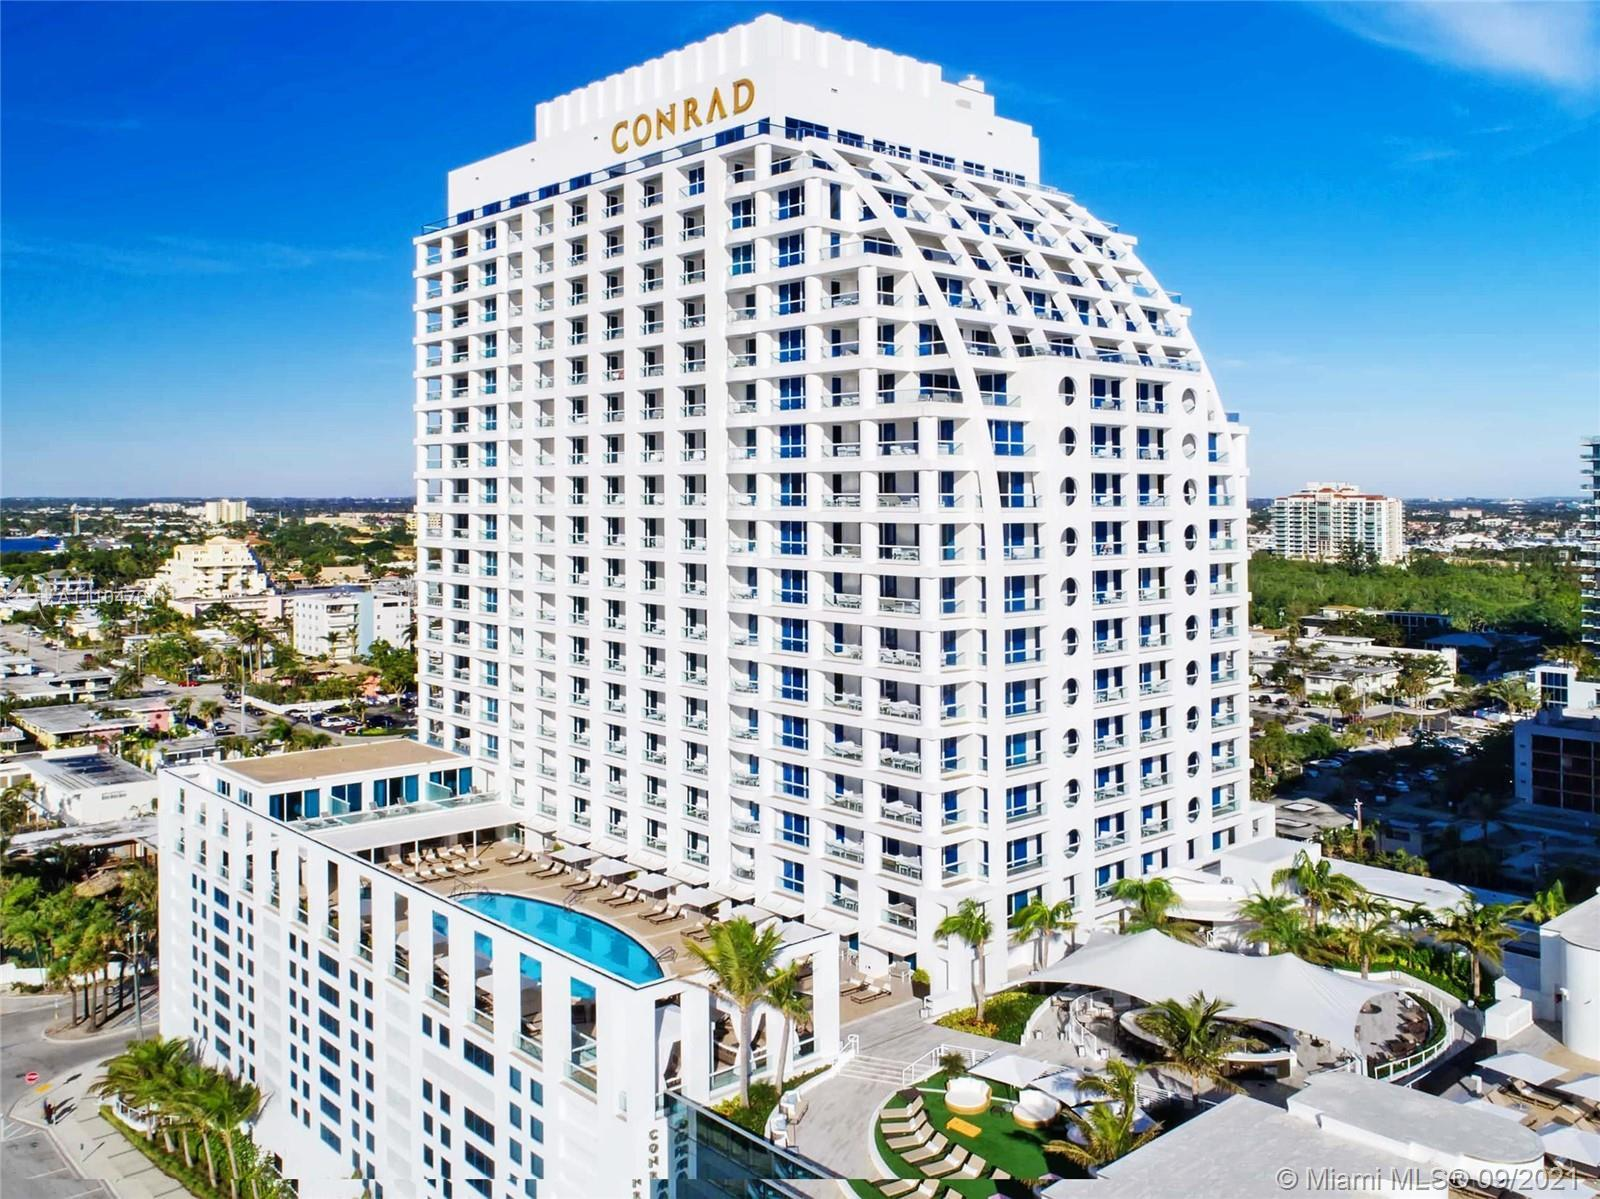 *** SPECTACULAR TURN-KEY JUNIOR SUITE IN CONRAD HOTEL & RESIDENCES  FORT LAUDERDALE *** AWESOME INSP